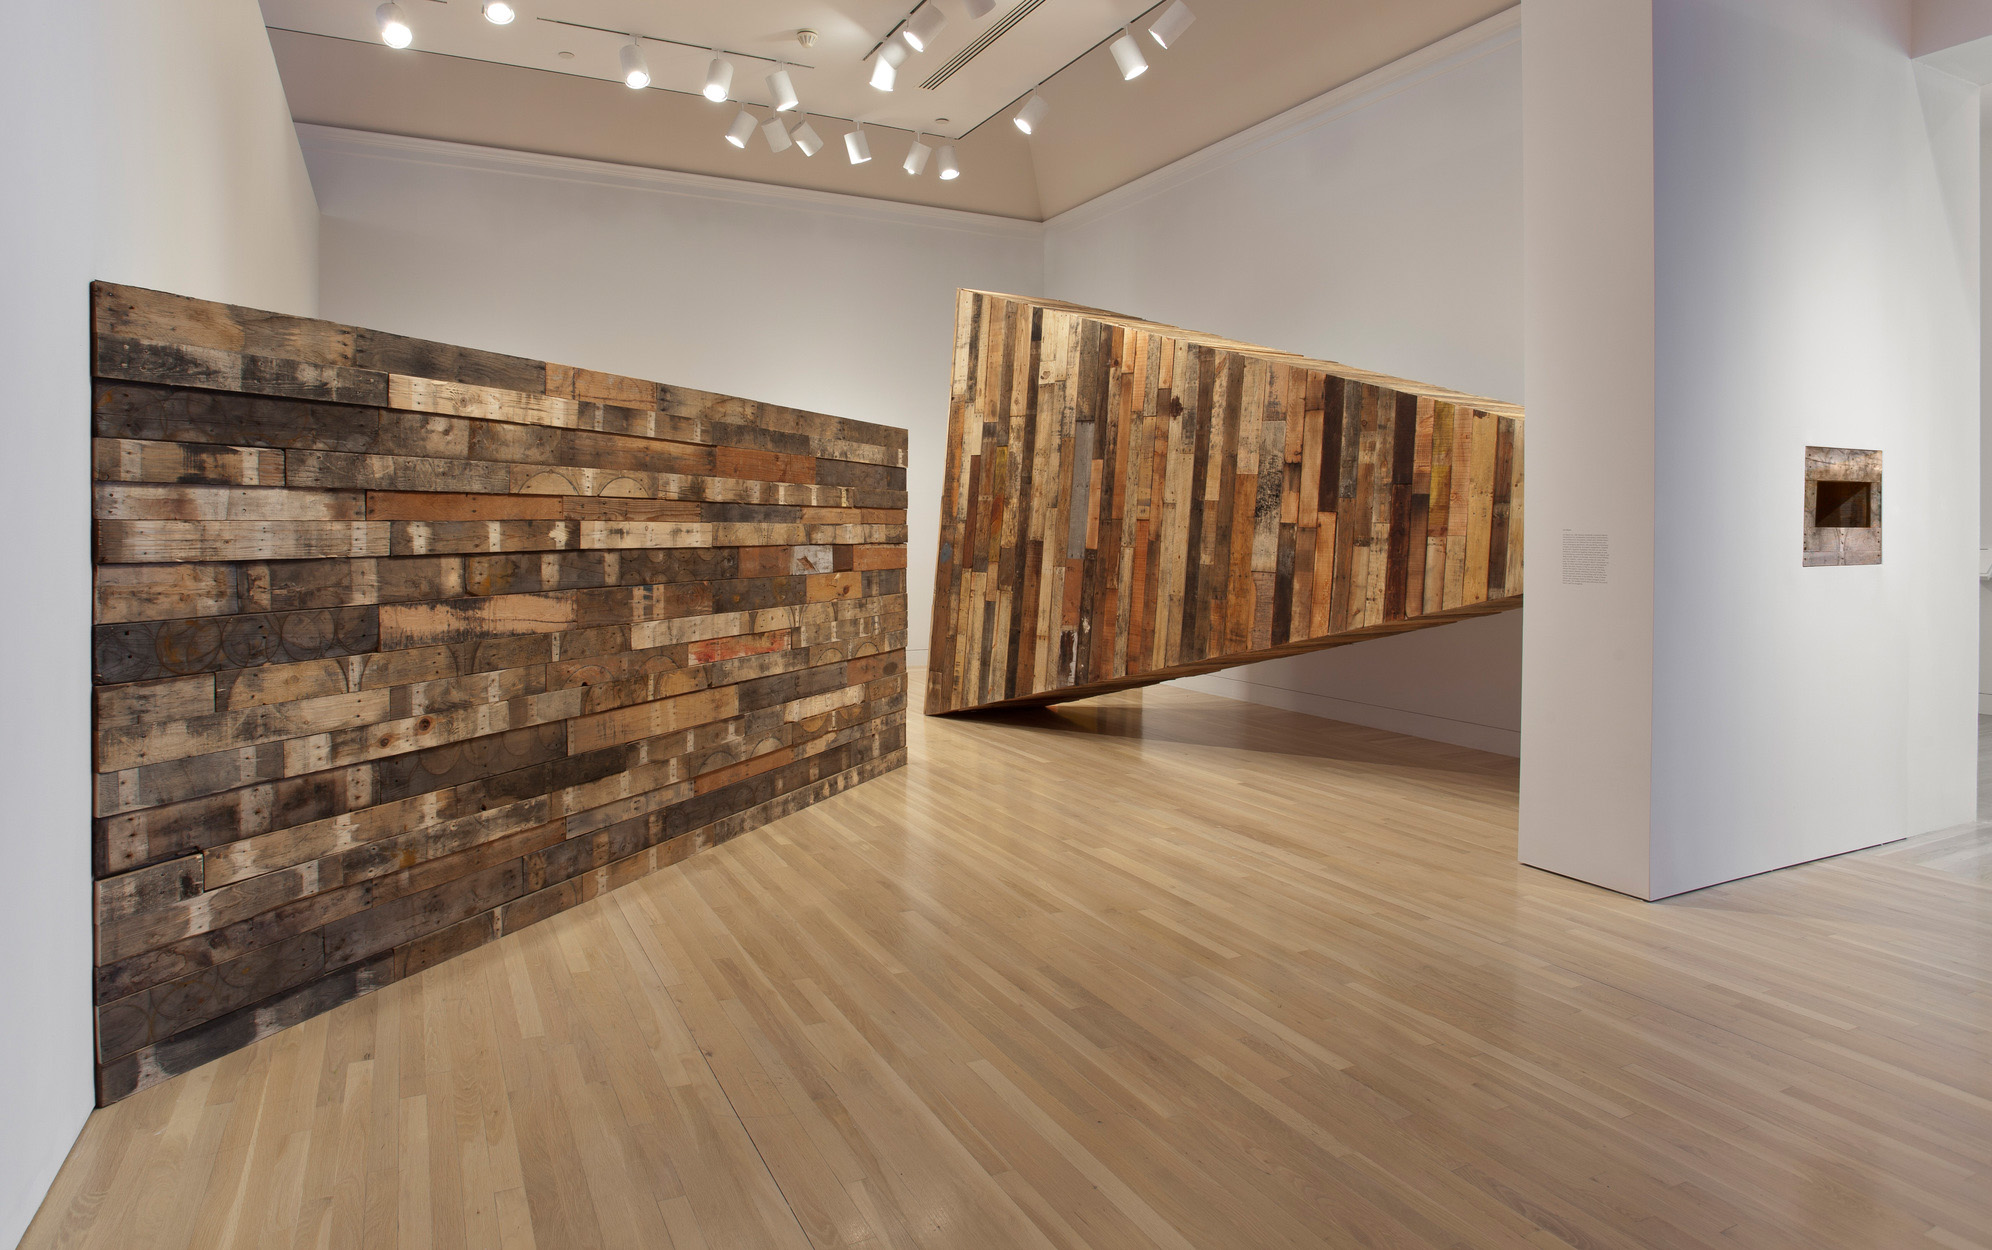 Liz Glynn, <em>Made in L.A. 2012</em>, 2012. Installation view at the Hammer Museum, Los Angeles. Photo: Brian Forrest. Courtesy of the Hammer Museum.